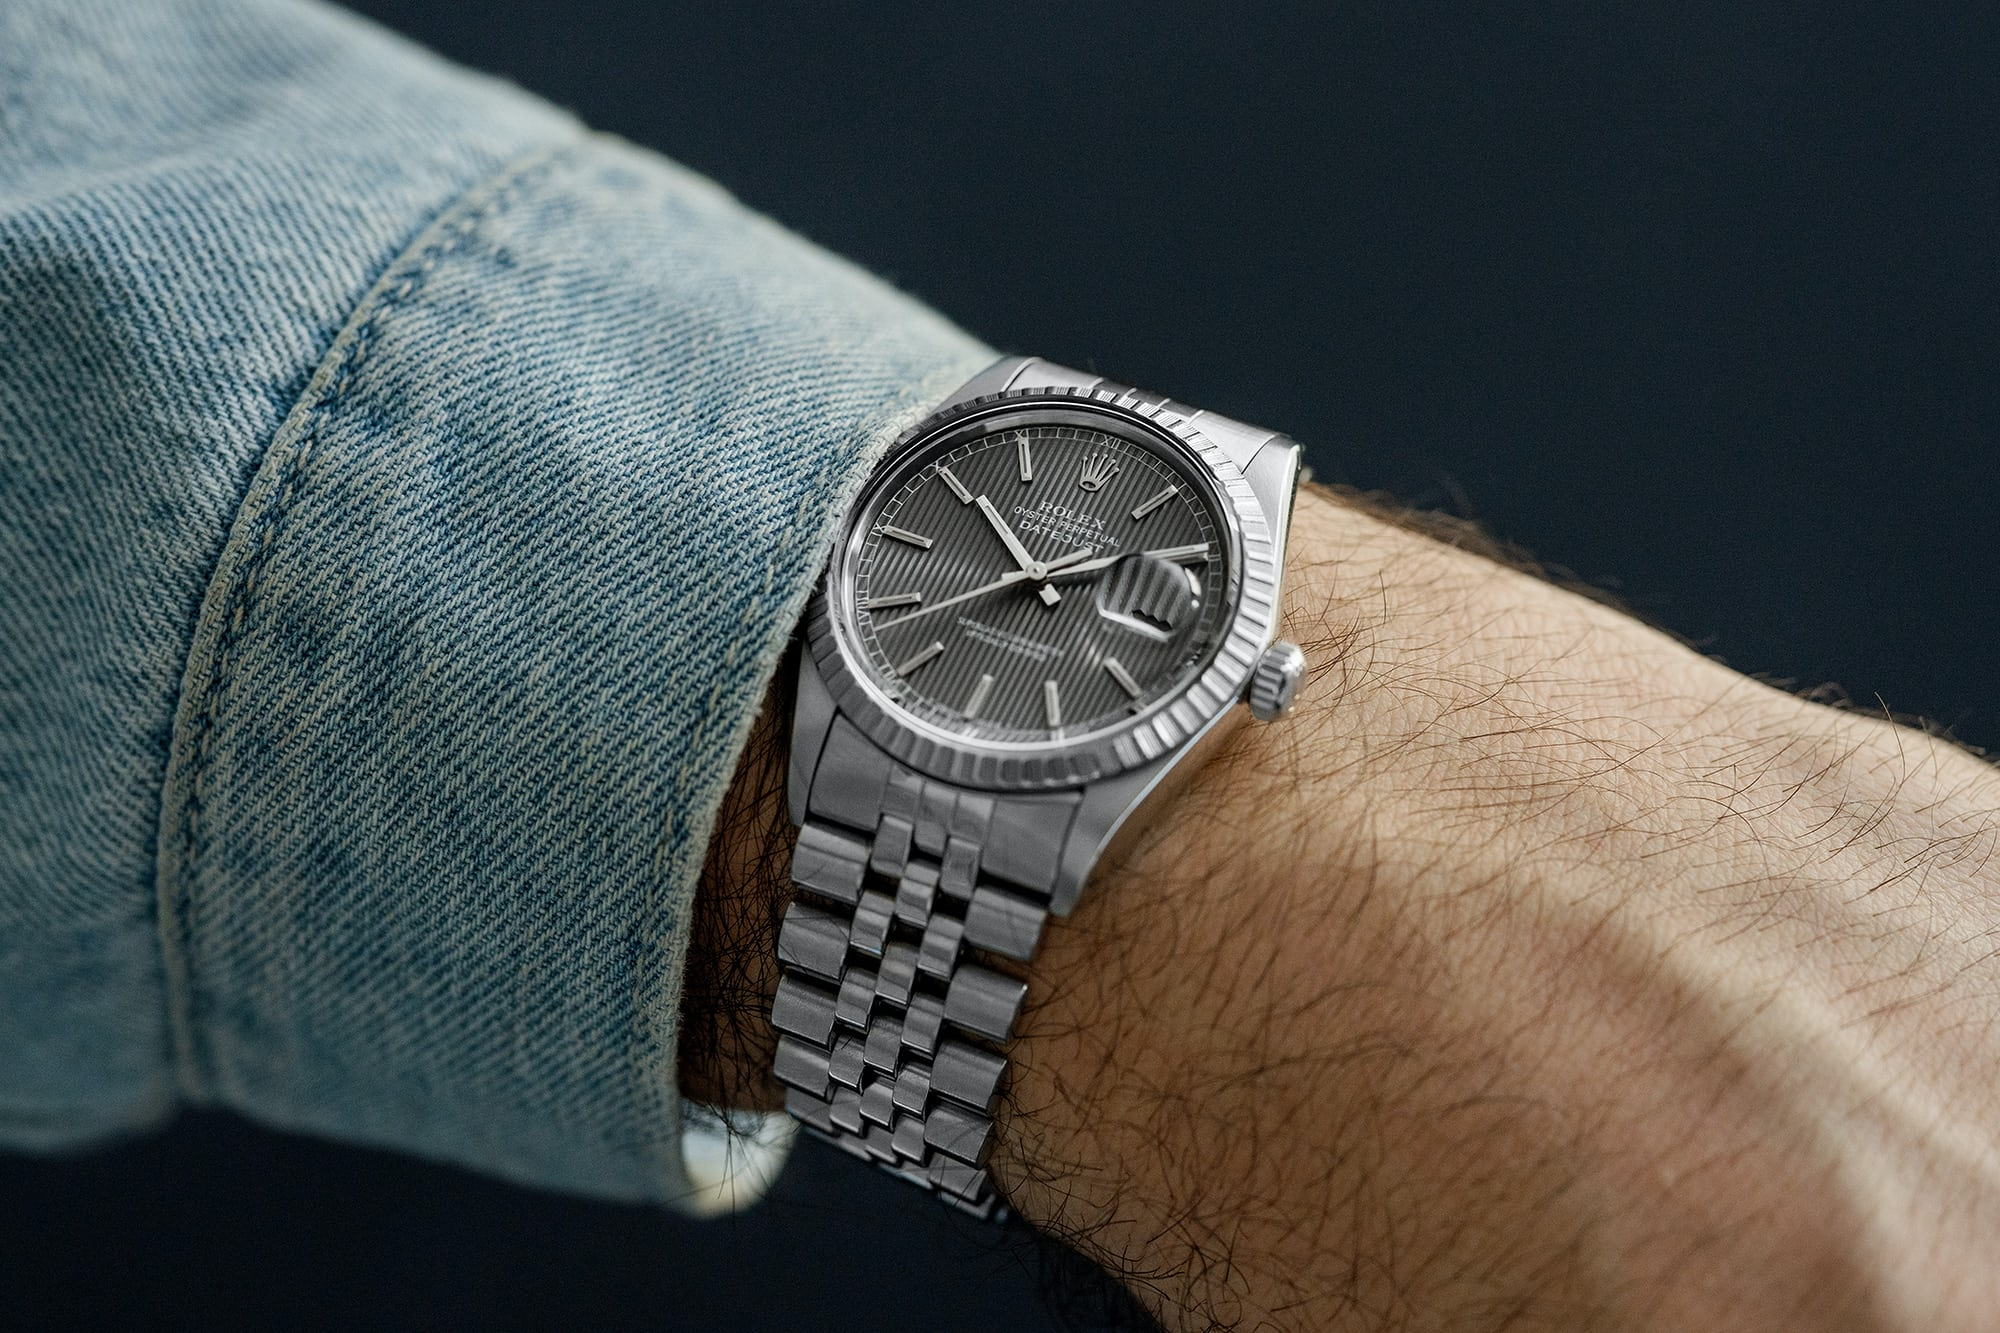 "<p><a href=""https://shop.hodinkee.com/products/ss-oyster-perpetual-datejust-reference-16000-case-9664696-grey-tappeserie-dial-1"" rel=""noopener"" target=""_blank""><u>1987 Rolex Datejust Ref. 16030 With Grey Tapestry Dial</u></a></p>"